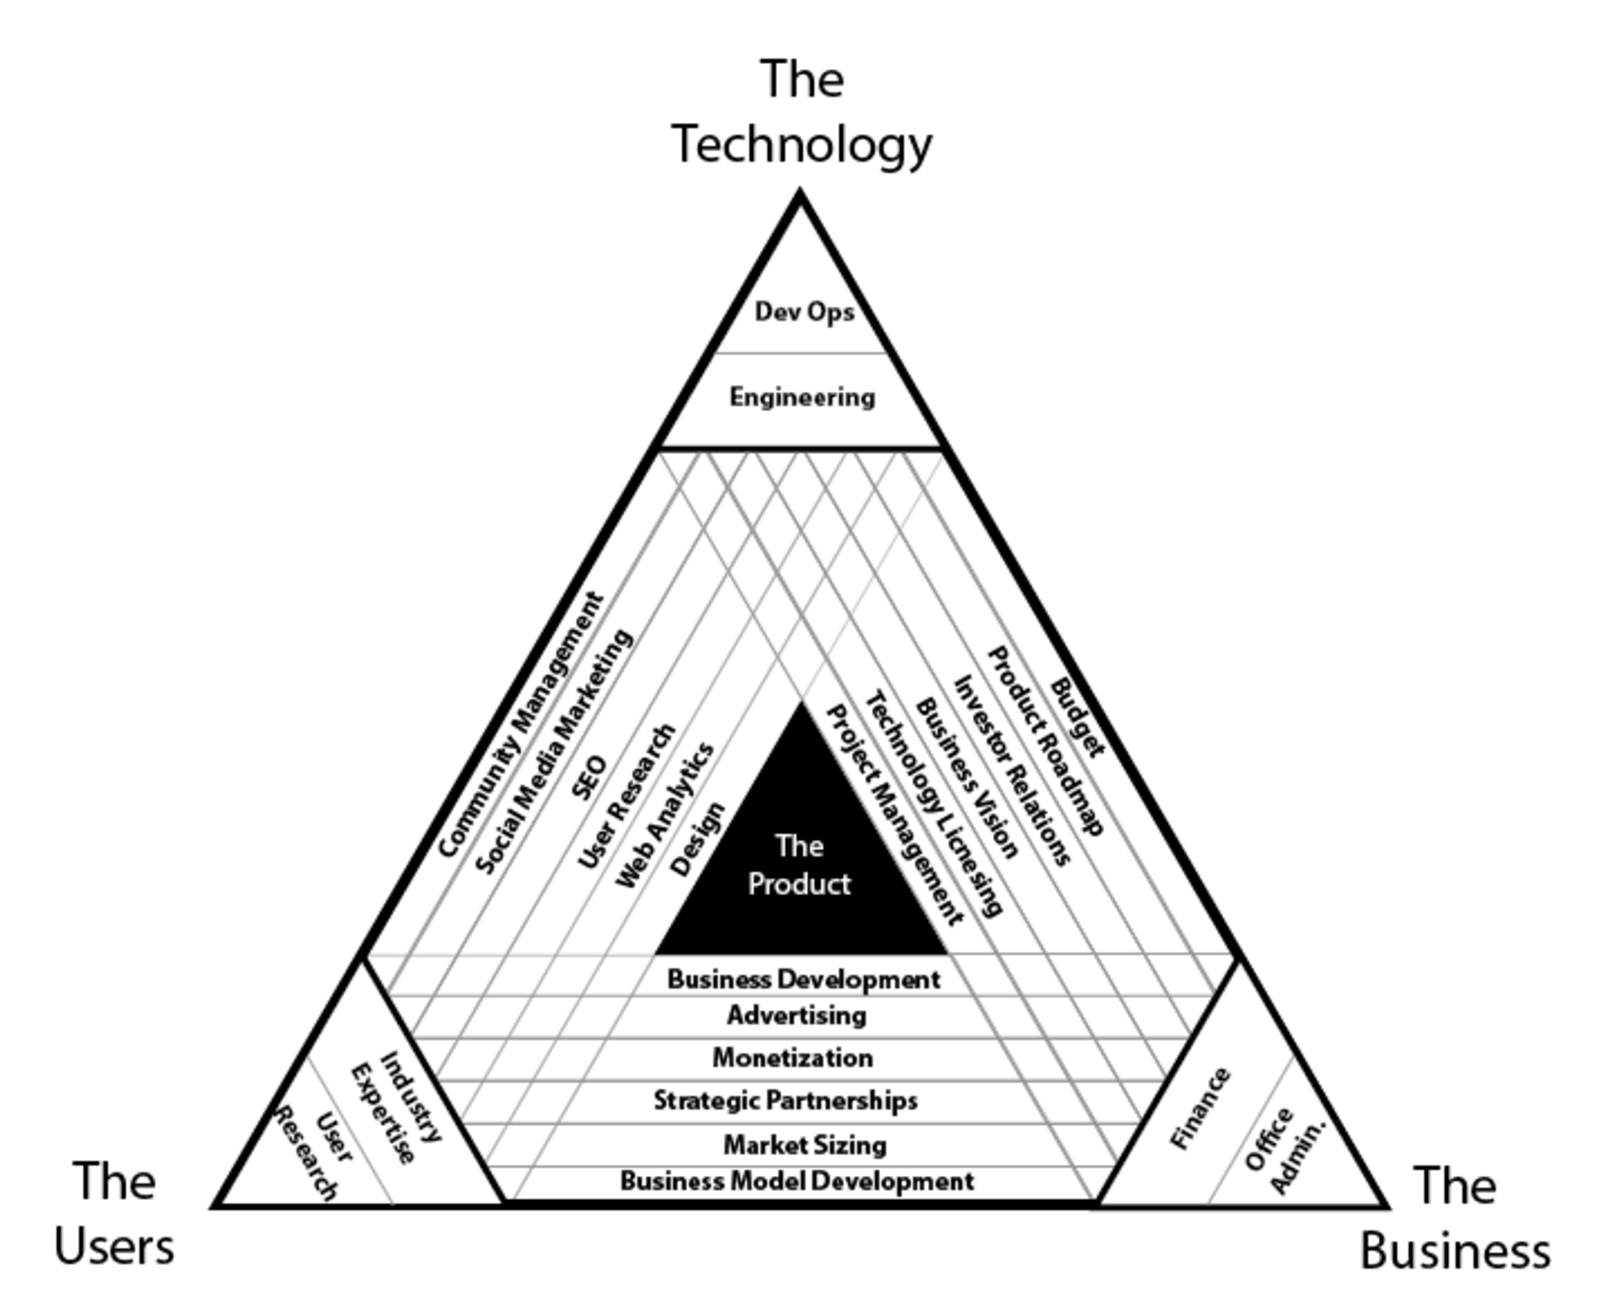 diagram of the roles in a technology business that